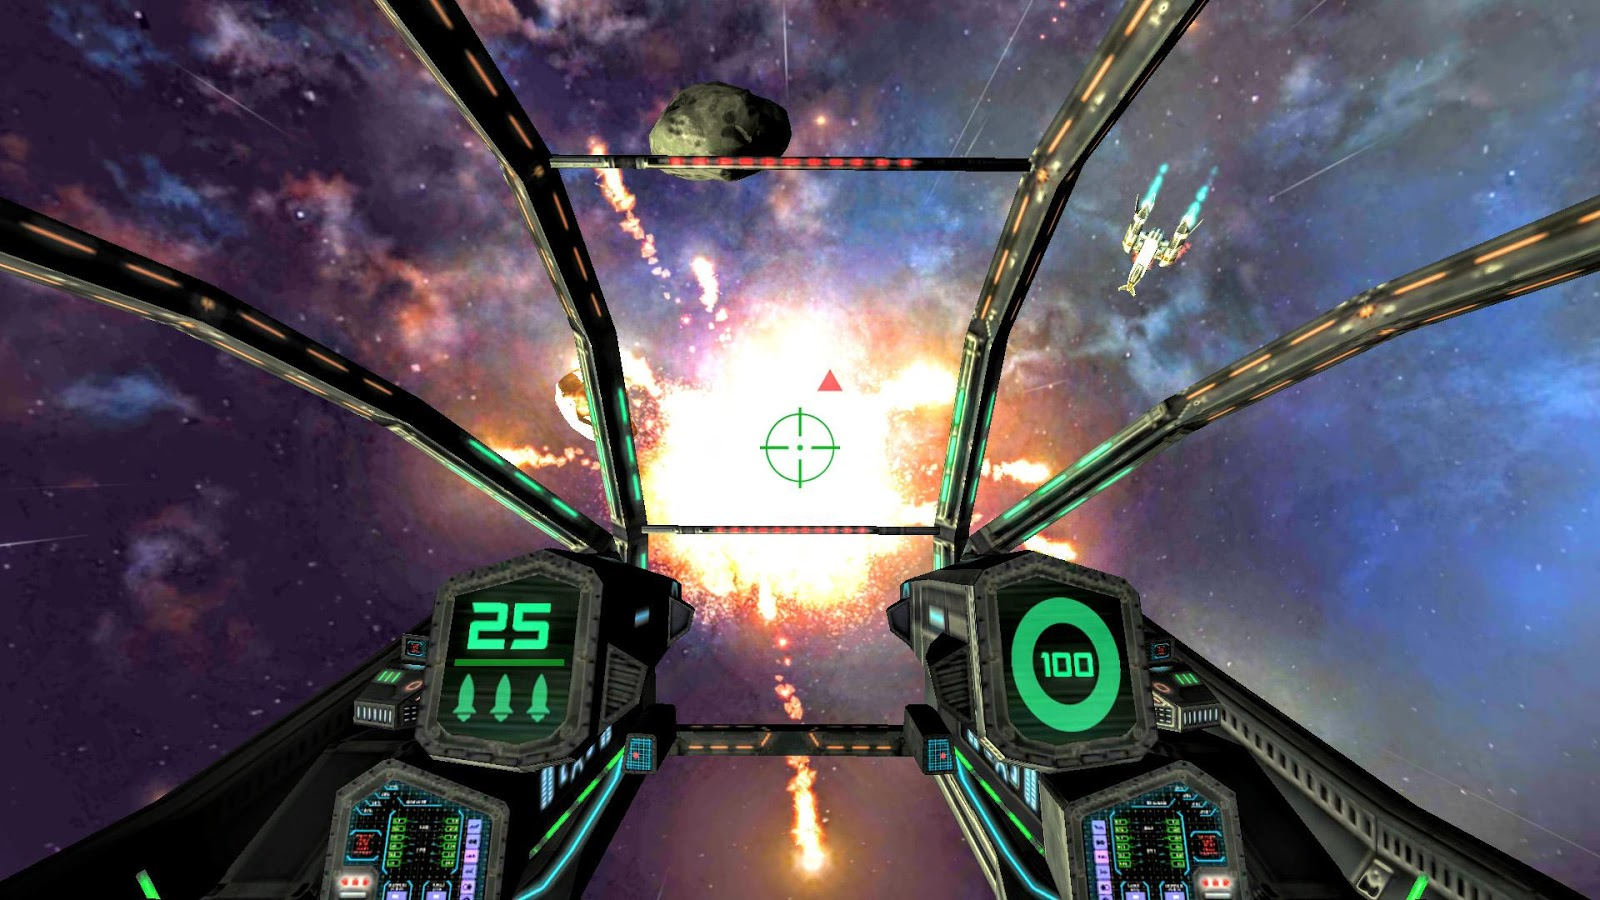 VR Space The Last Mission Android Apps On Google Play - The last of us map app apk